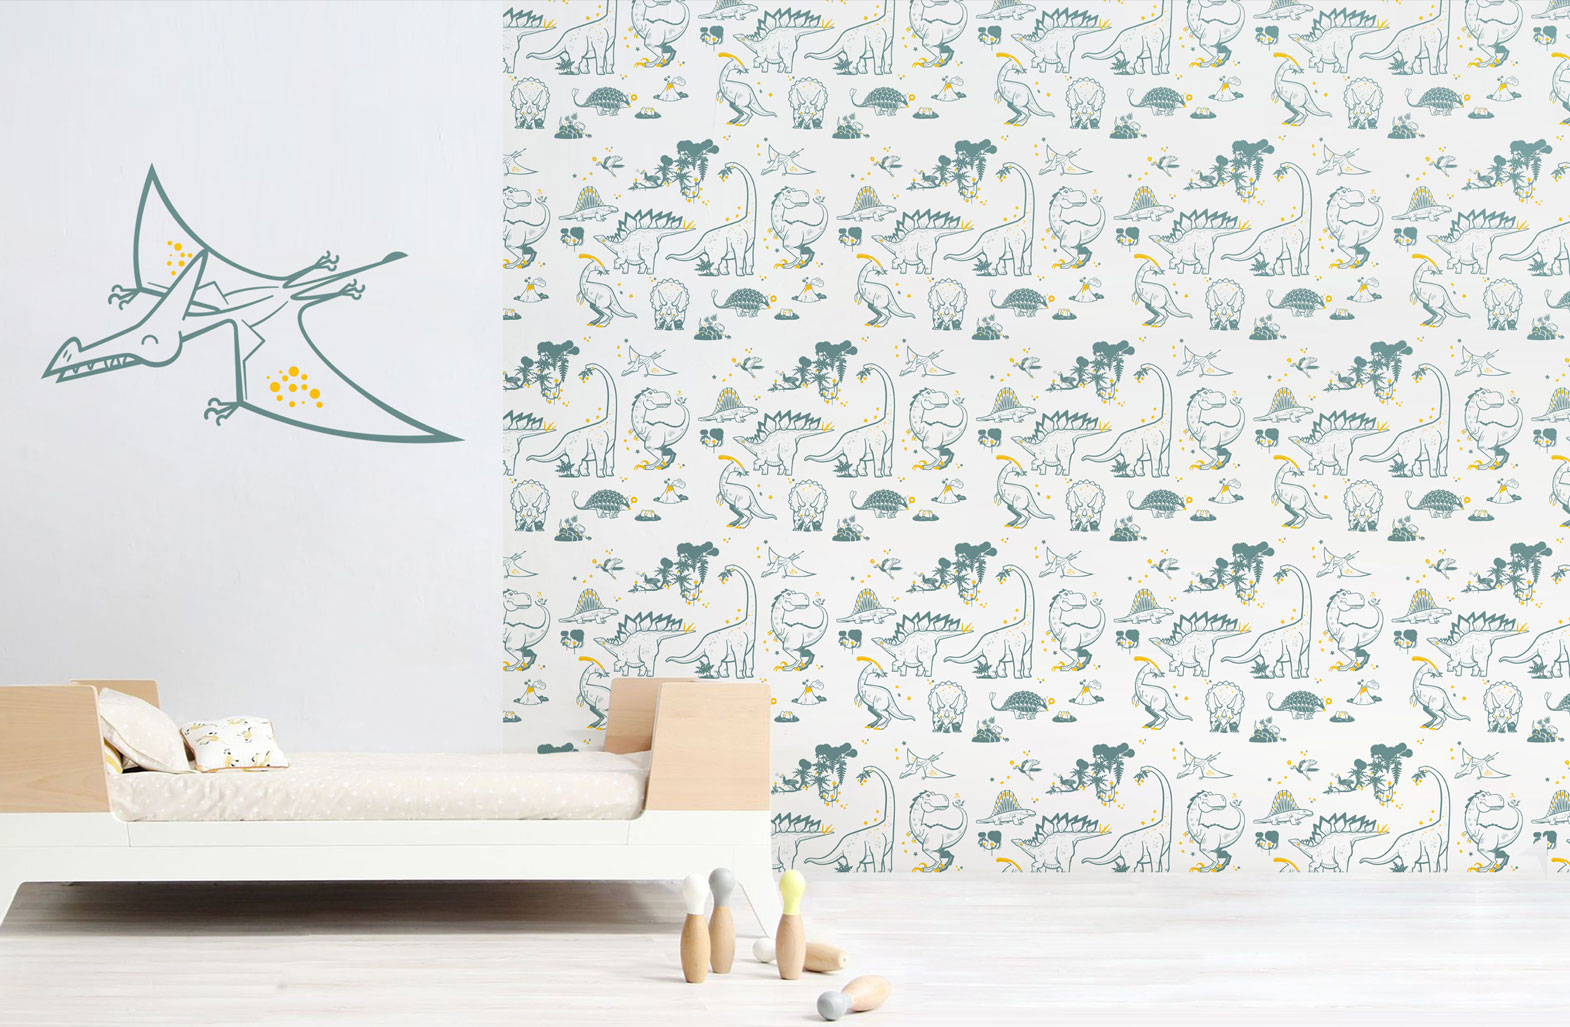 Pterodactyl wall decal and dinosaur wallpaper combination by E-Glue design